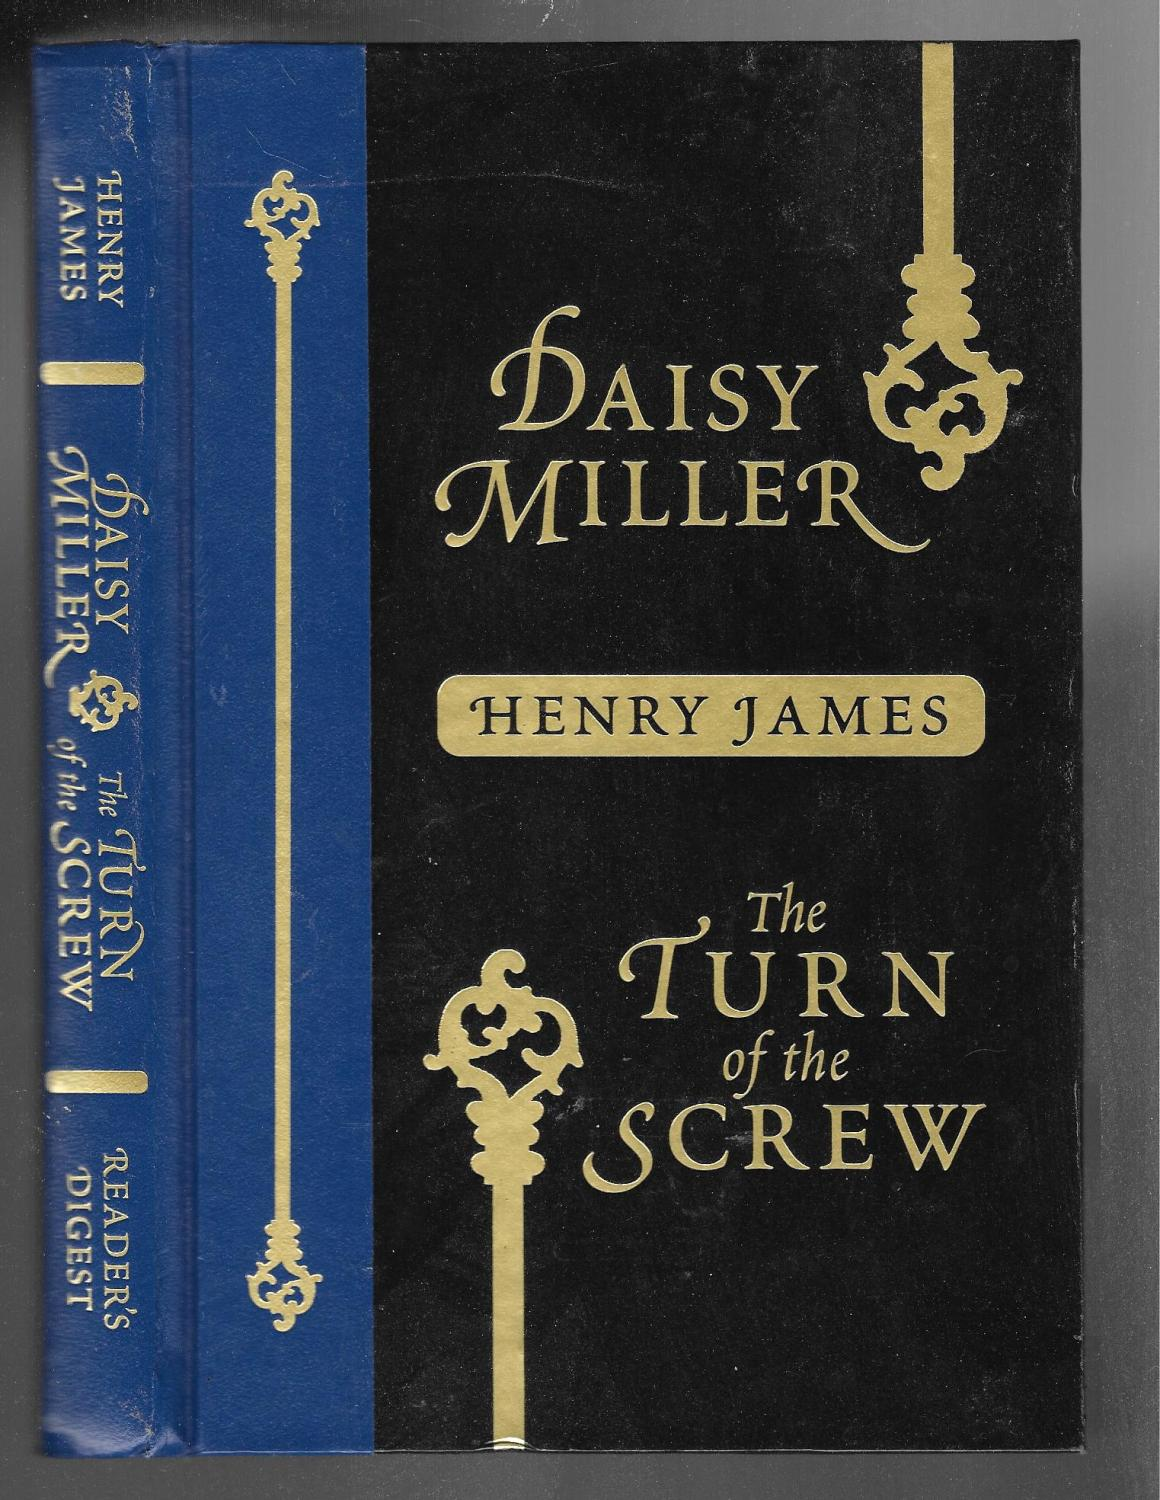 DAISY MILLER / THE TURN OF THE SCREW - James, Henry